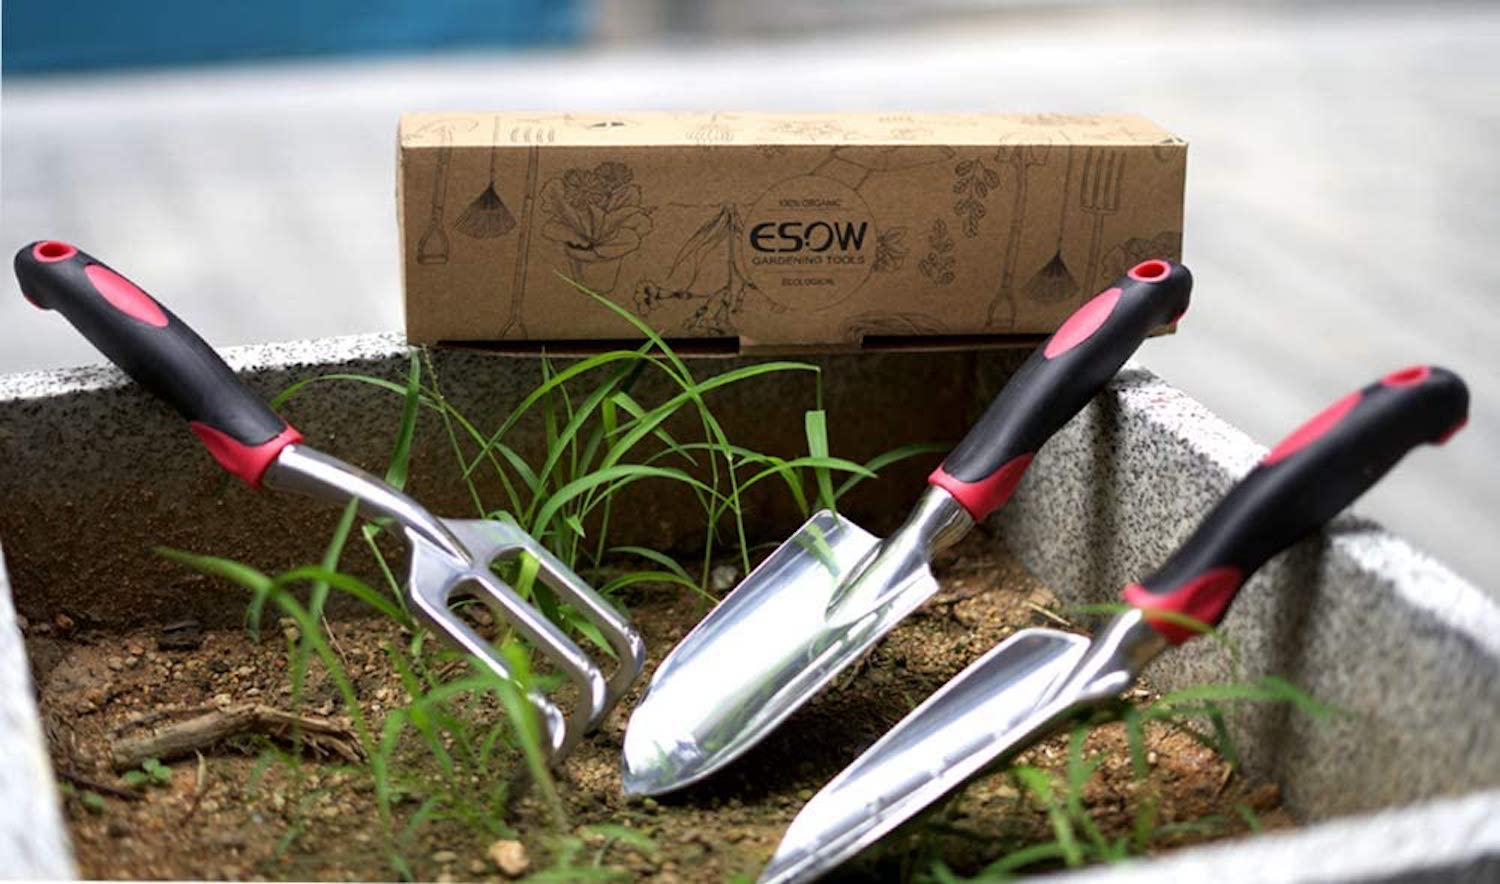 A garden rake, a trowel, and a transplanting shovel sit in a small dirt garden bed